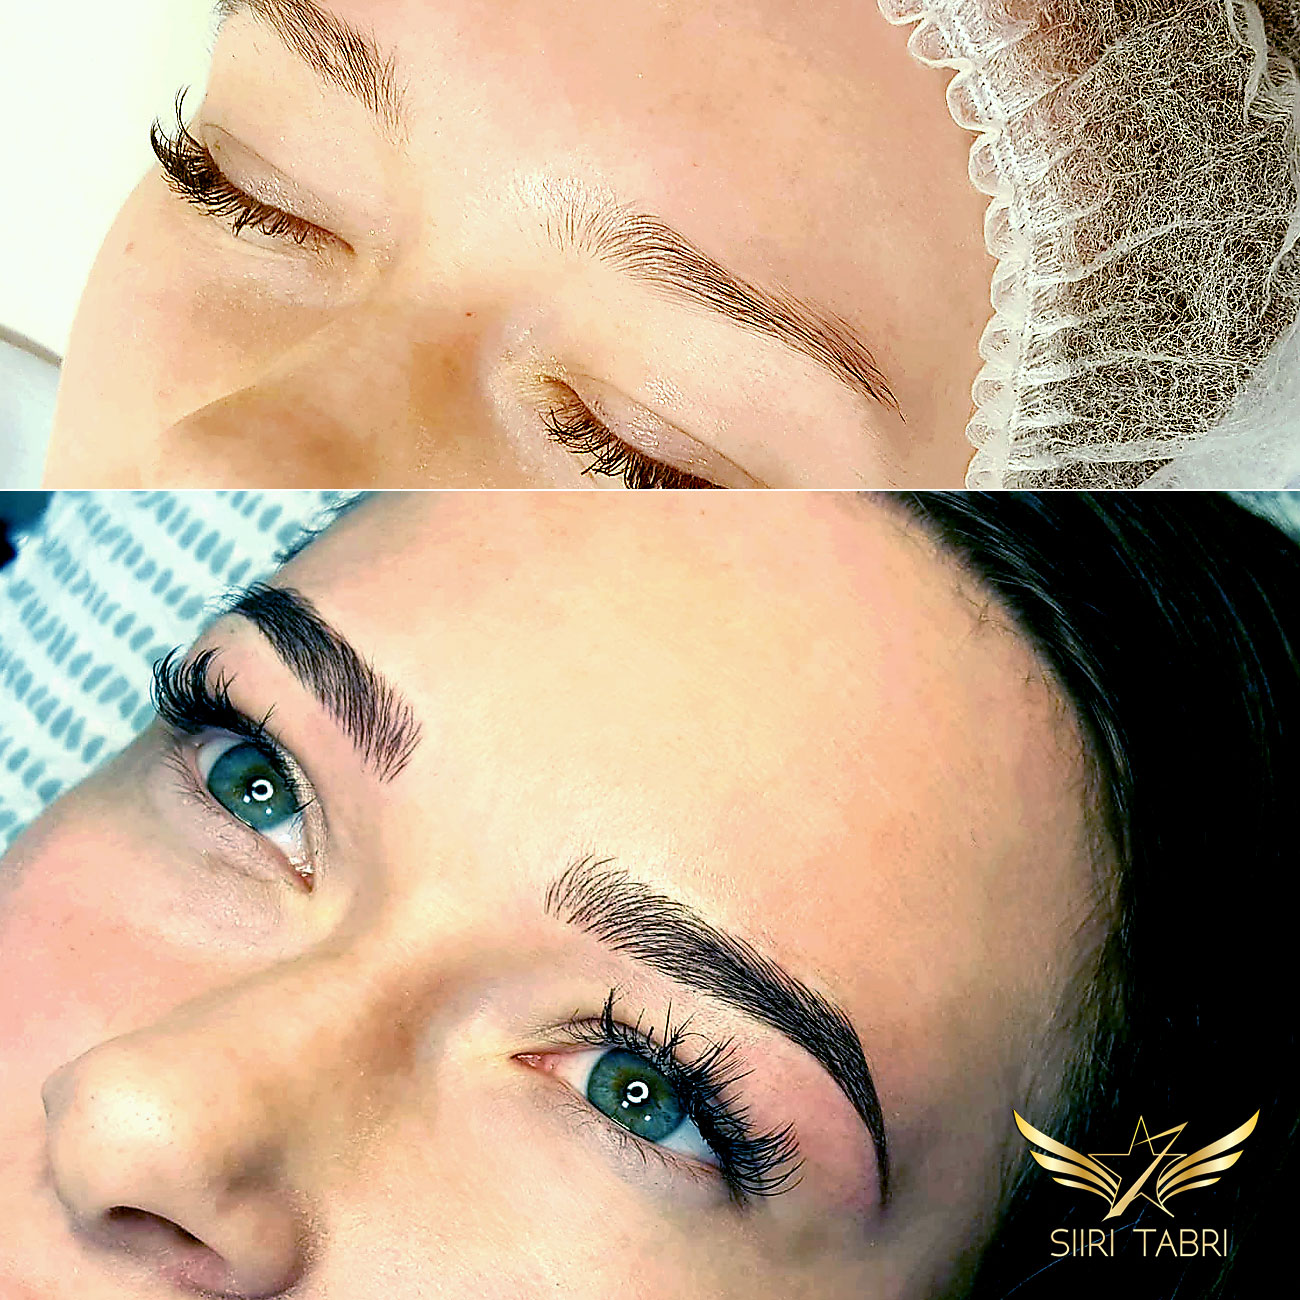 Light microblading. We started with rather good brows. Still, the end result is the level in microblading one should aspire to be on.